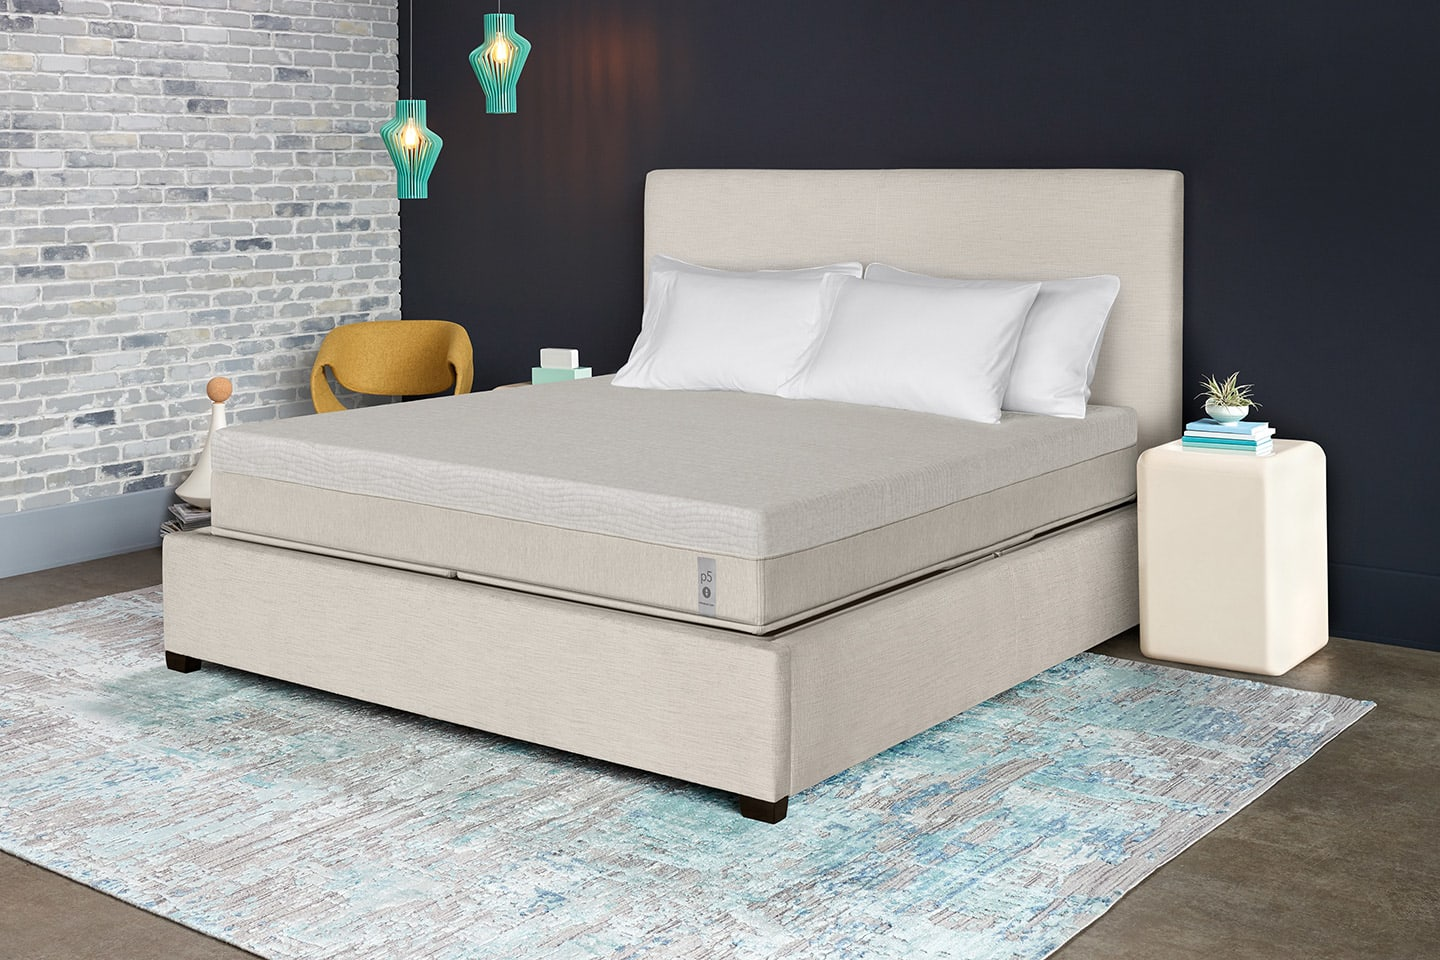 Sleep Number Mattress Reviews | Mattress Advisor